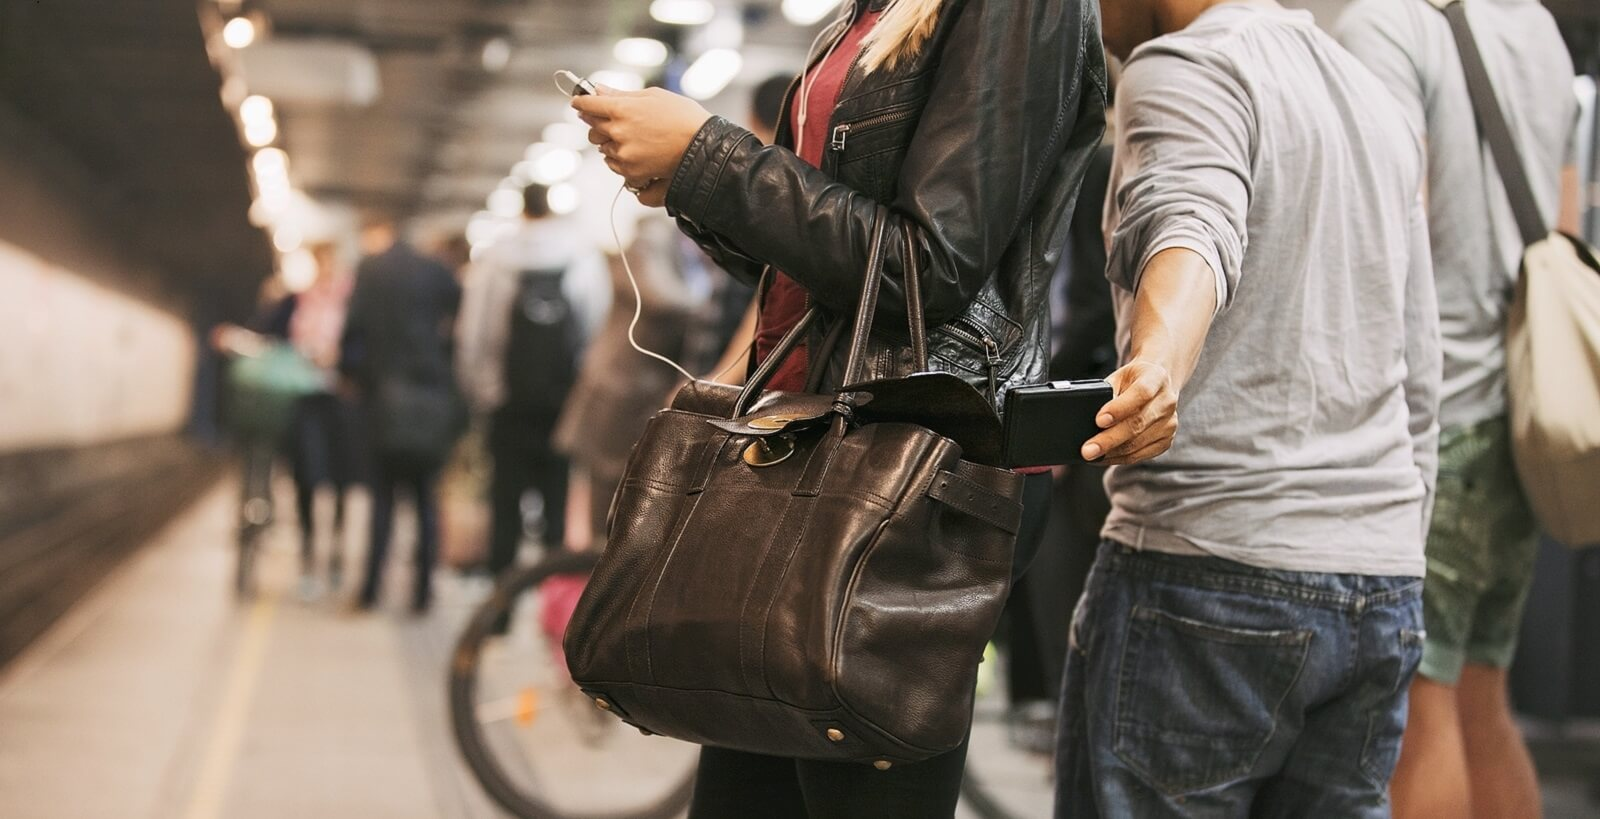 Pickpocketing in European cities